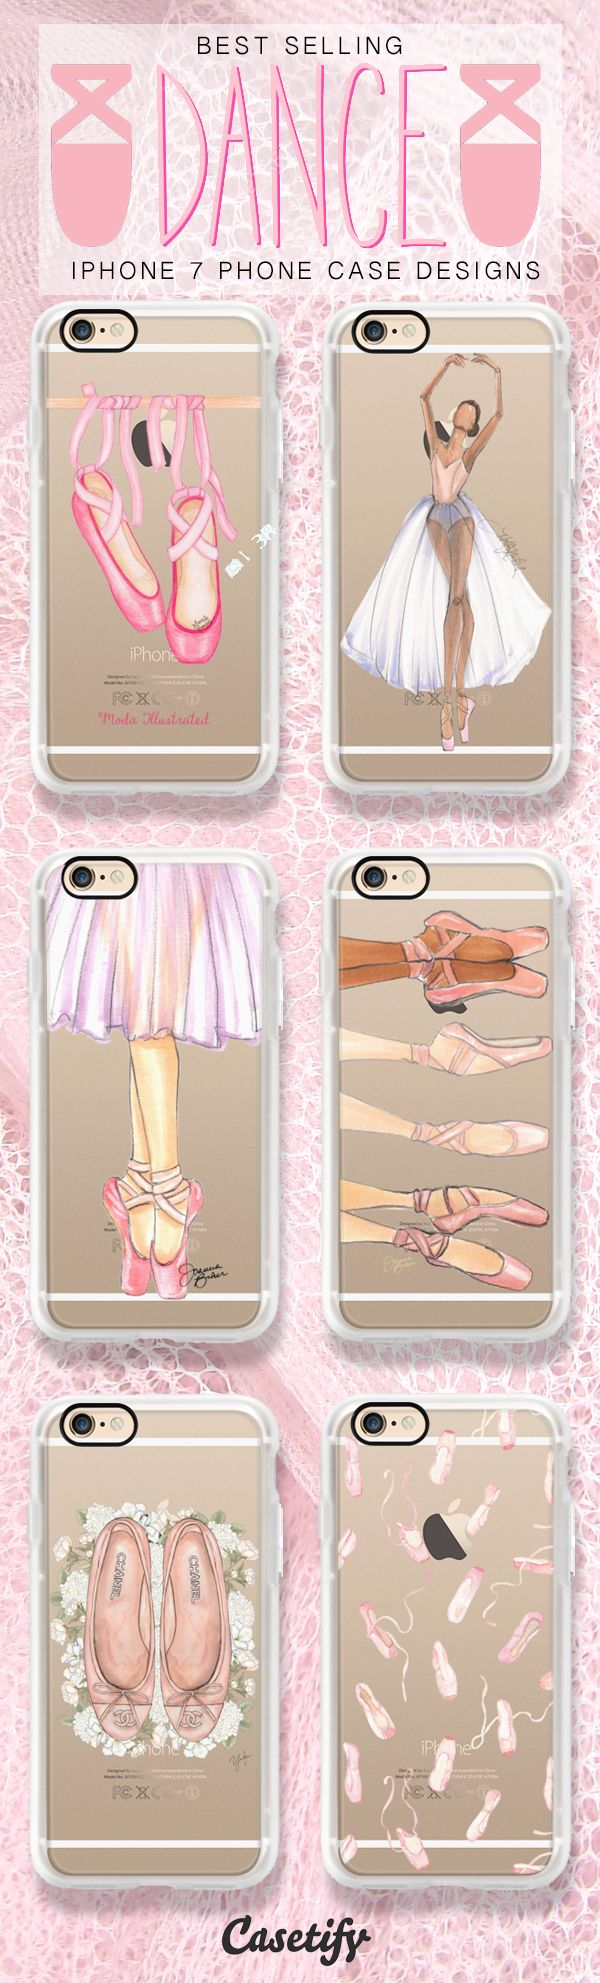 Dance like there is no tomorrow - shop these ballet iPhone 7 case designs here >>> https://www.casetify.com/artworks/oqe0TKQDzJ http://amzn.to/2qZ3RzU